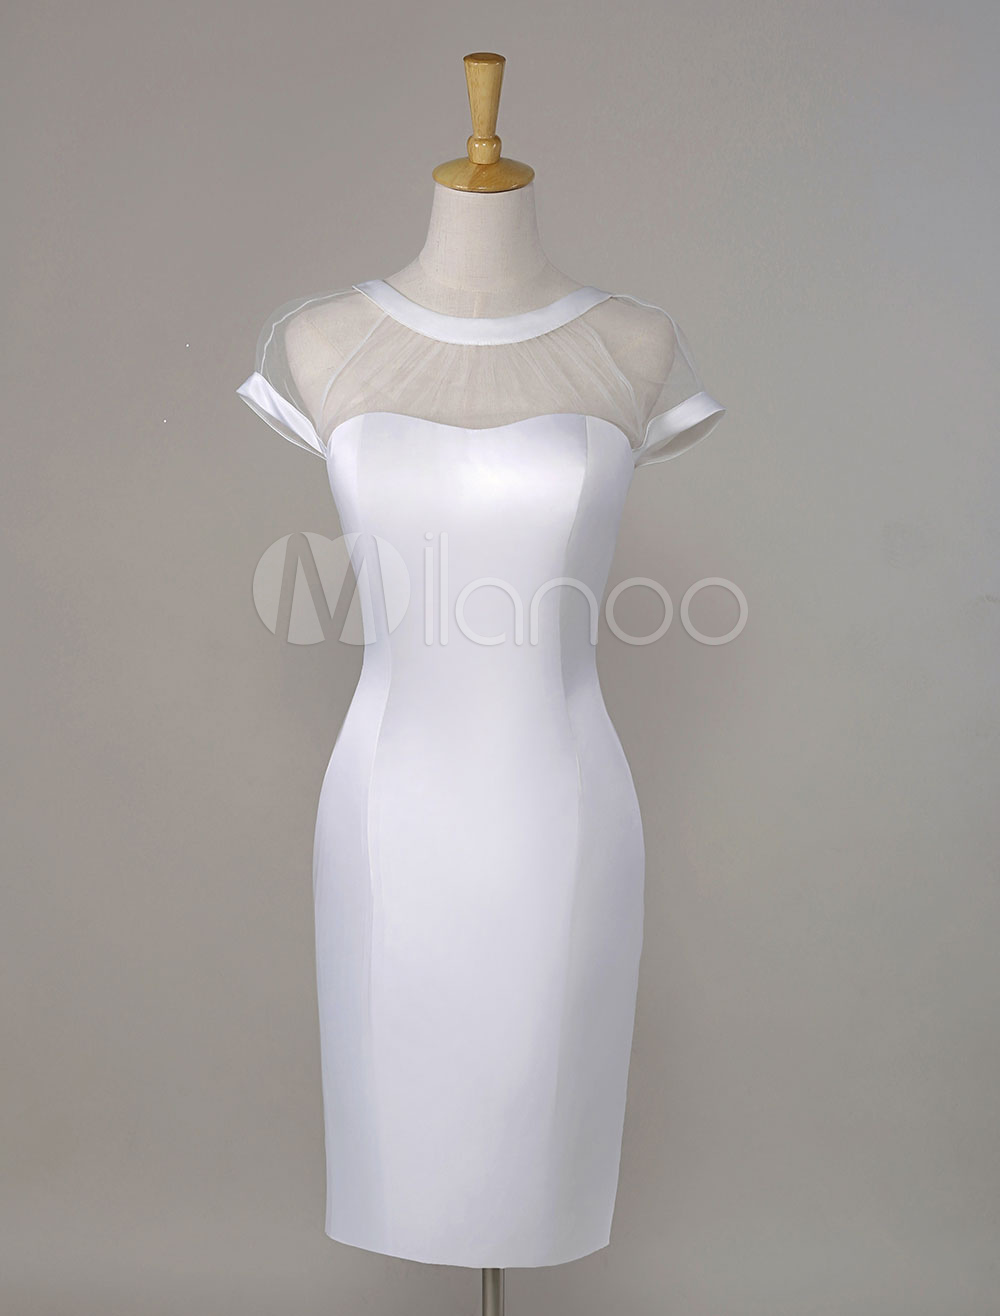 Milanoo / Short Sleeves Illusion V-Back Satin Cocktail Dress